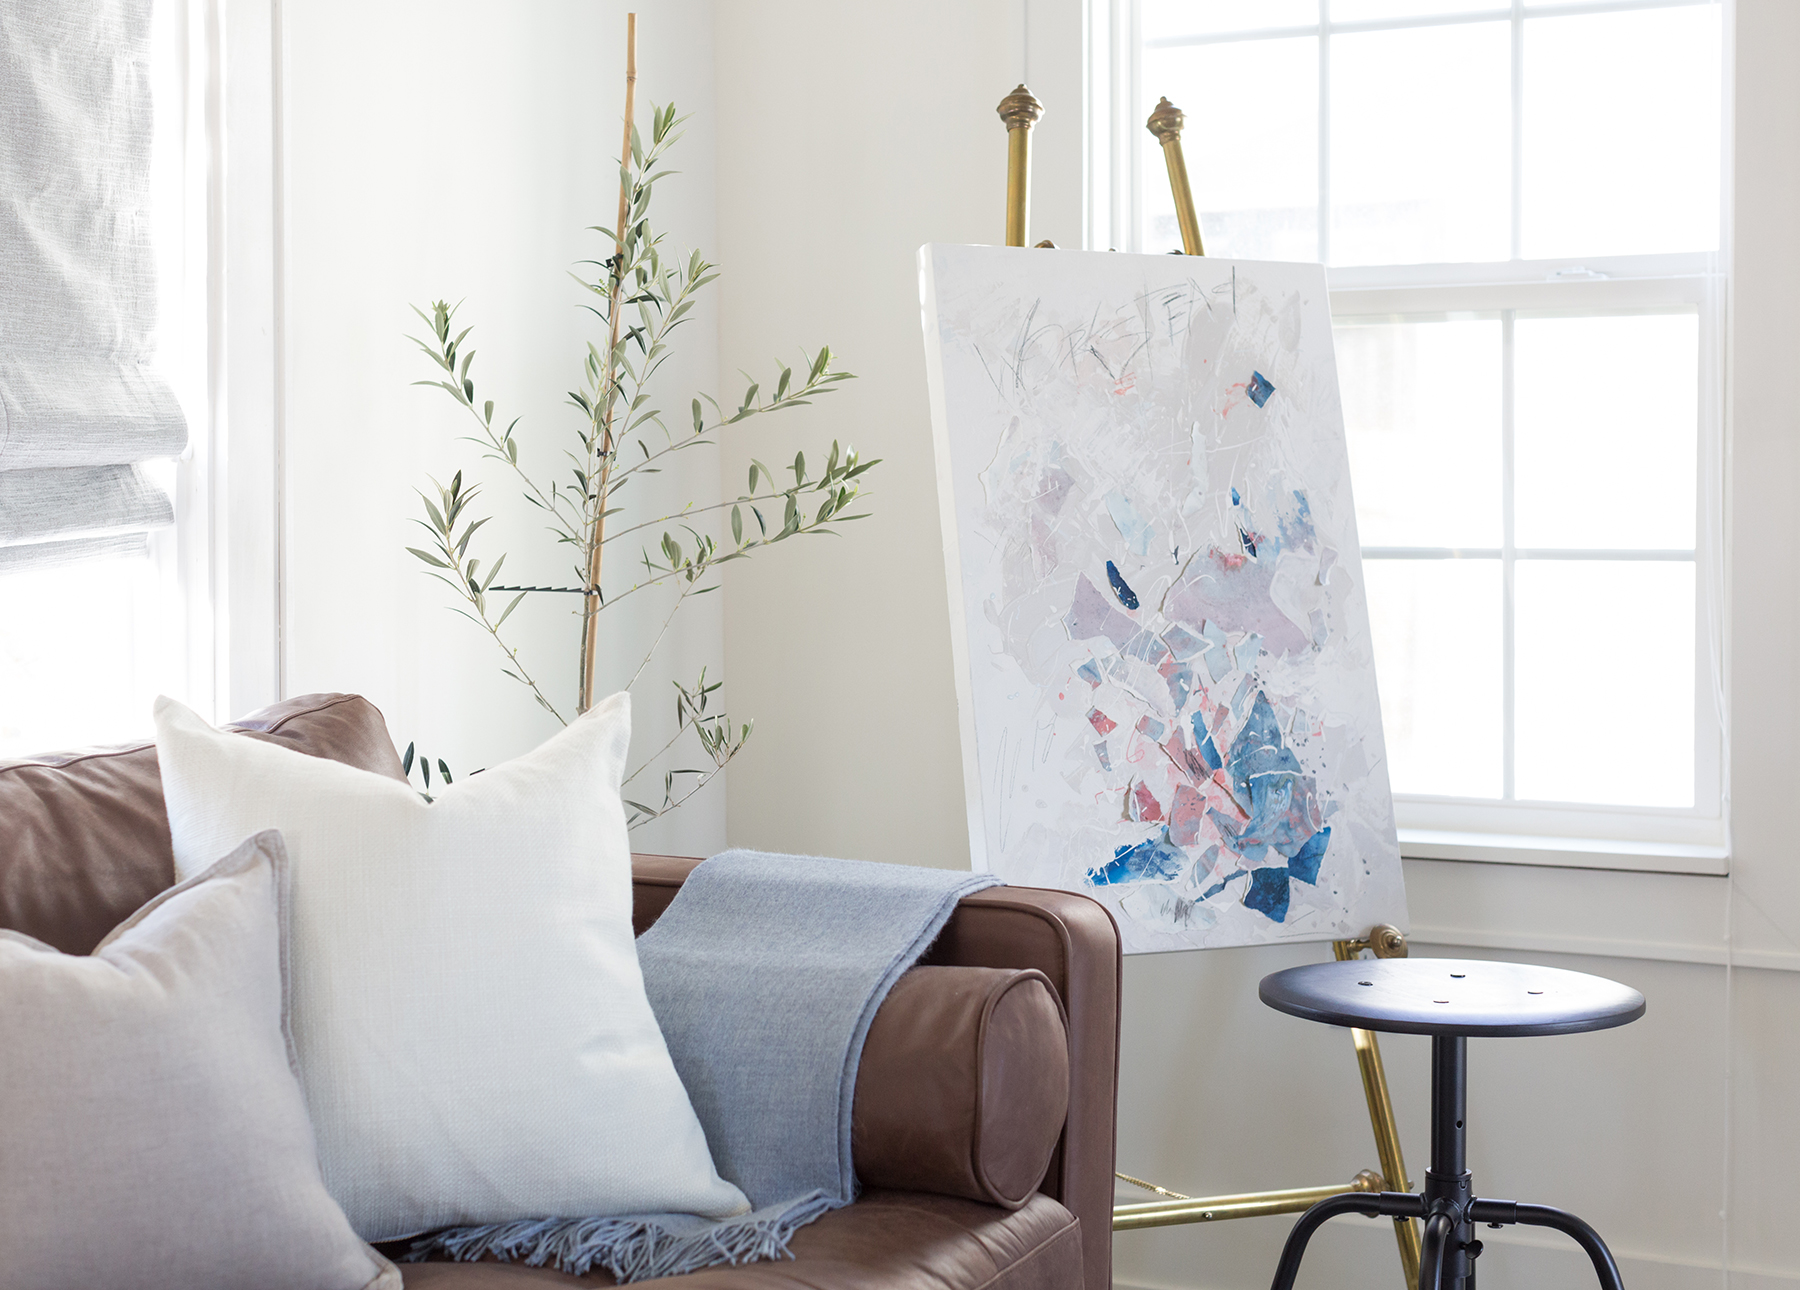 The Makerista's living room, with a Sven Chocolat sofa and artwork on an easel.